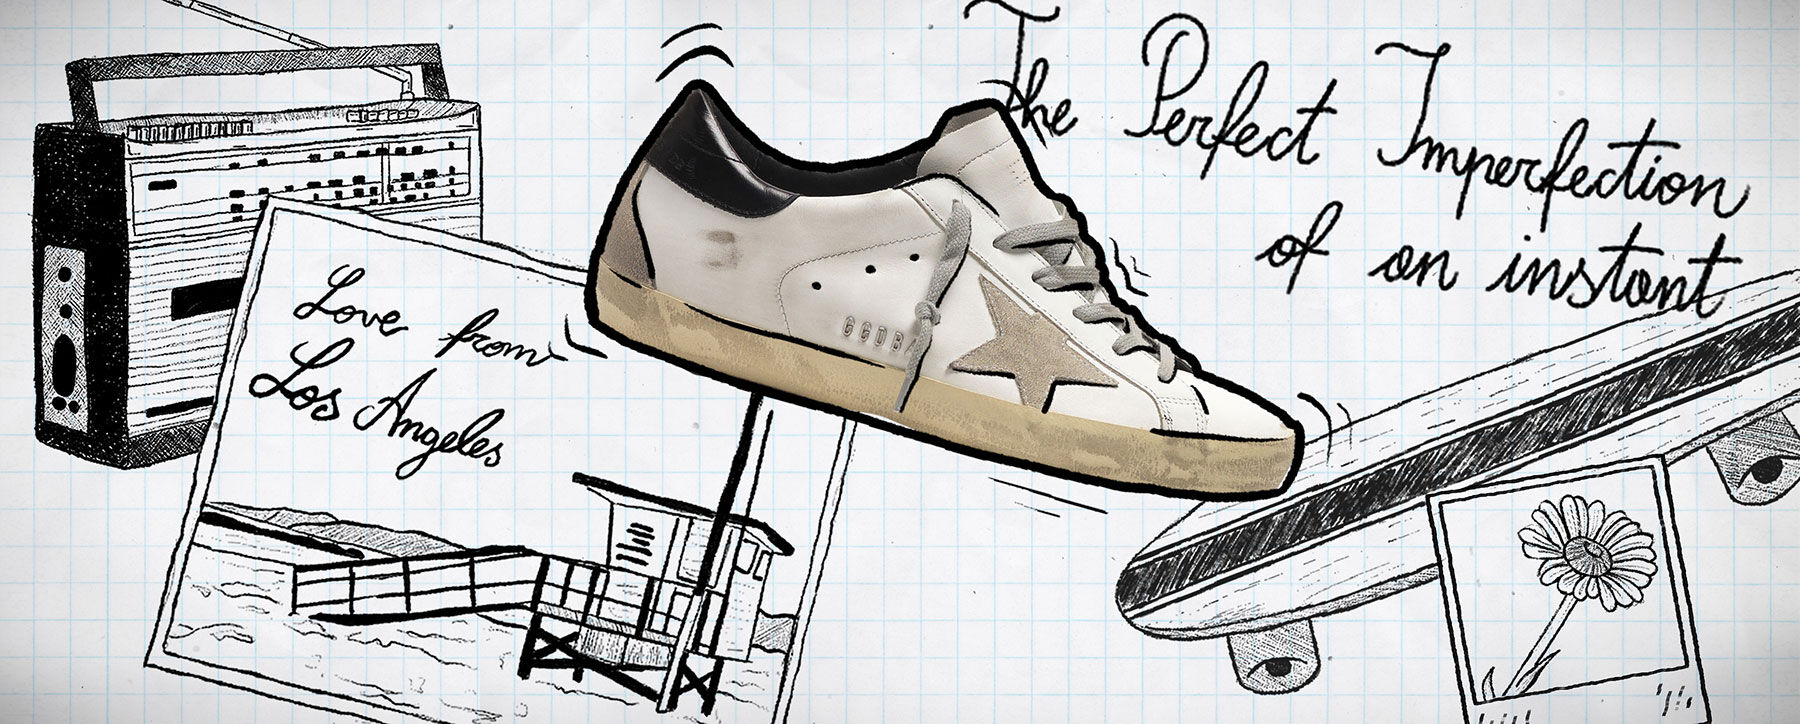 story of sneakers image